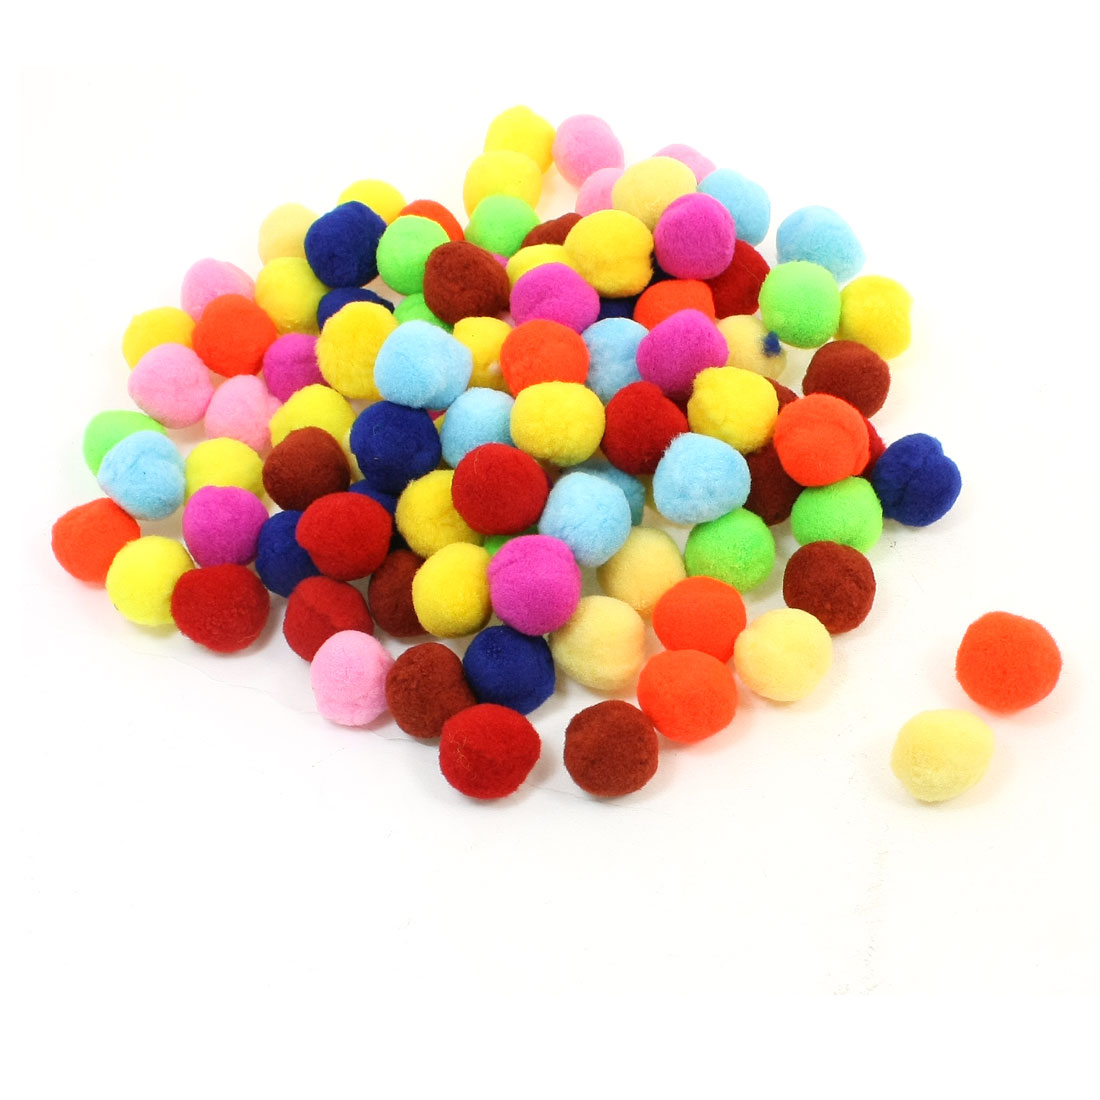 100 Pcs 18mm Diameter Assorted Colors Manmade Plush Pom Pom Ball